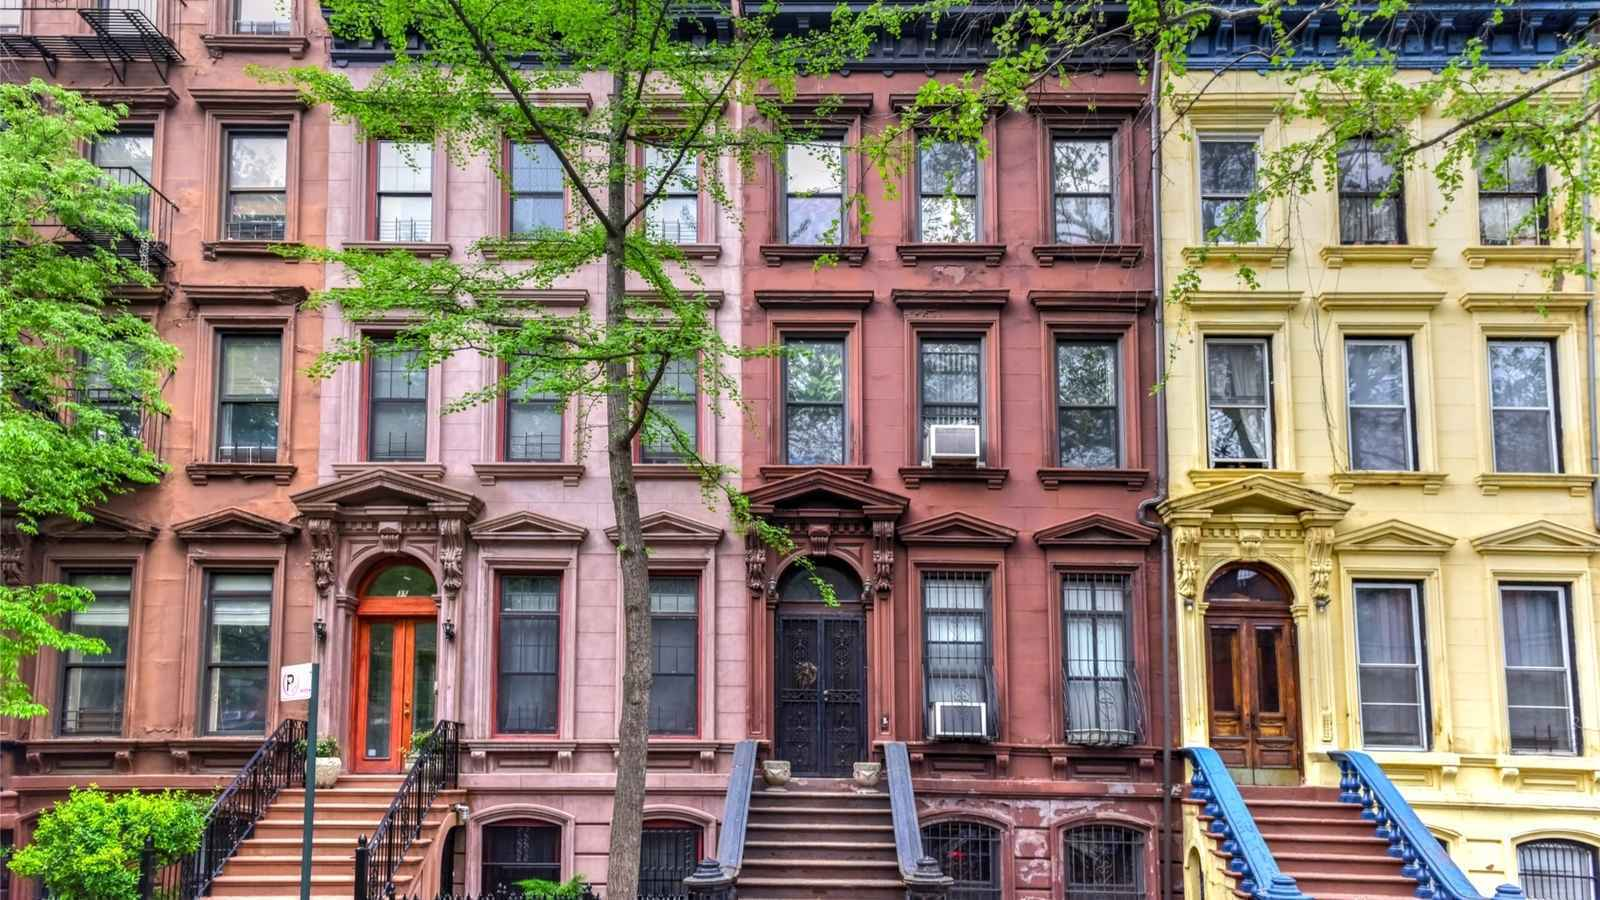 Residential brownstones in Harlem, New York